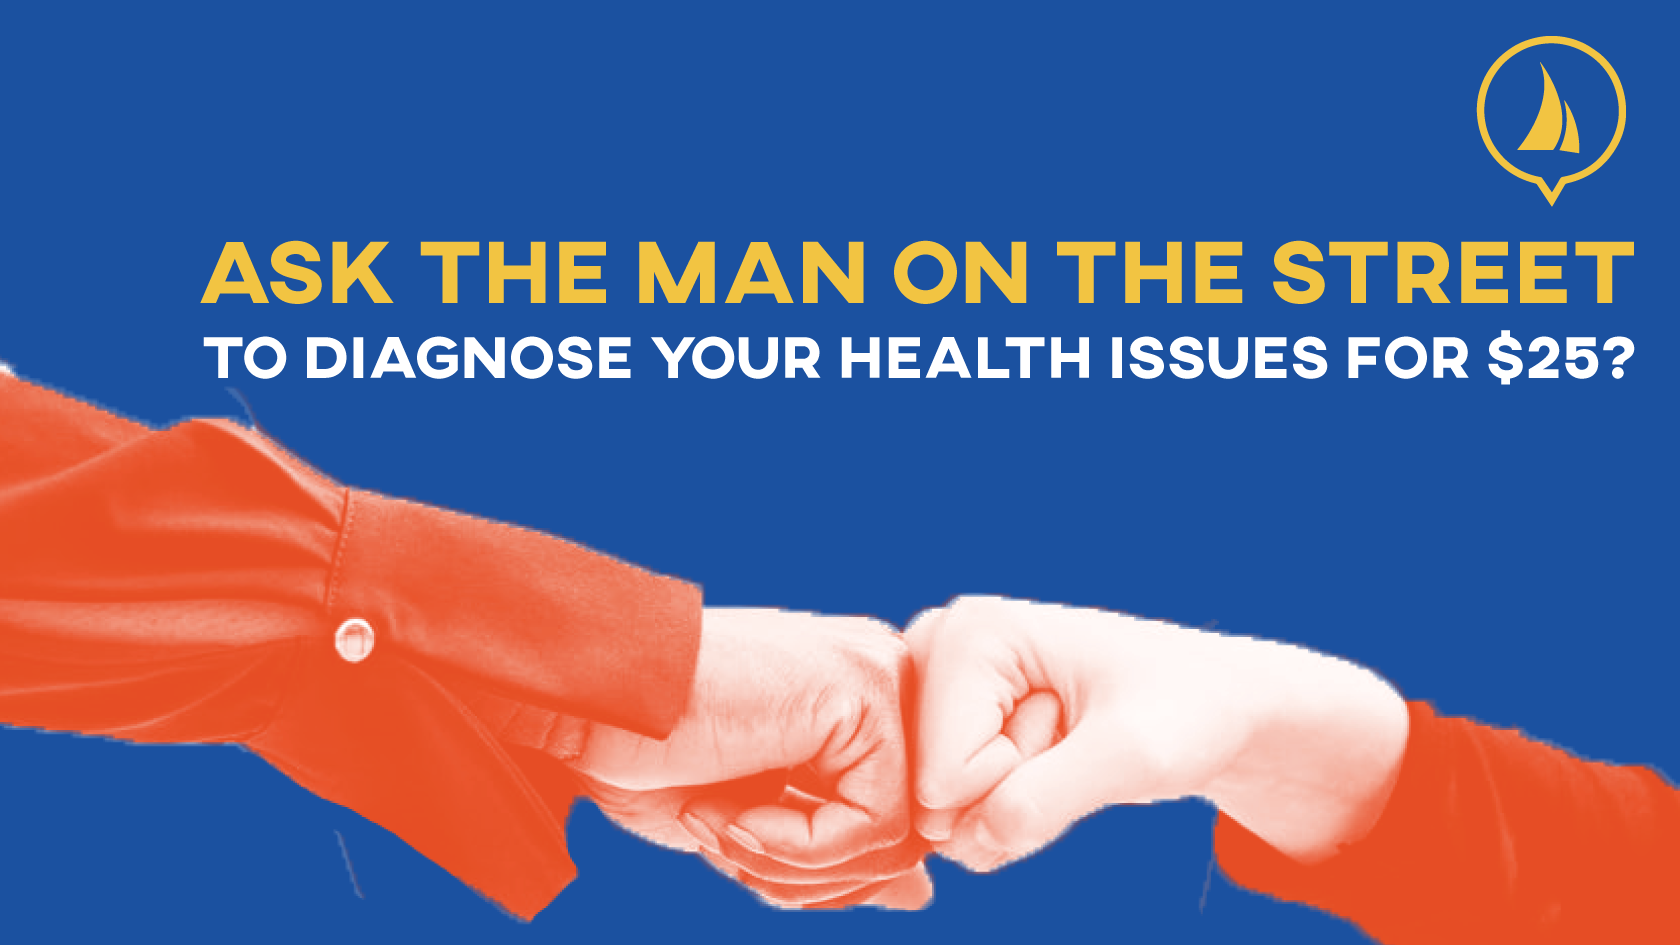 ask-the-man-on-the-street-to-diagnose-your-health-issues-for-$25----Thoughts-on-freelancing-for-businesses---Jib-Sheet-Partners